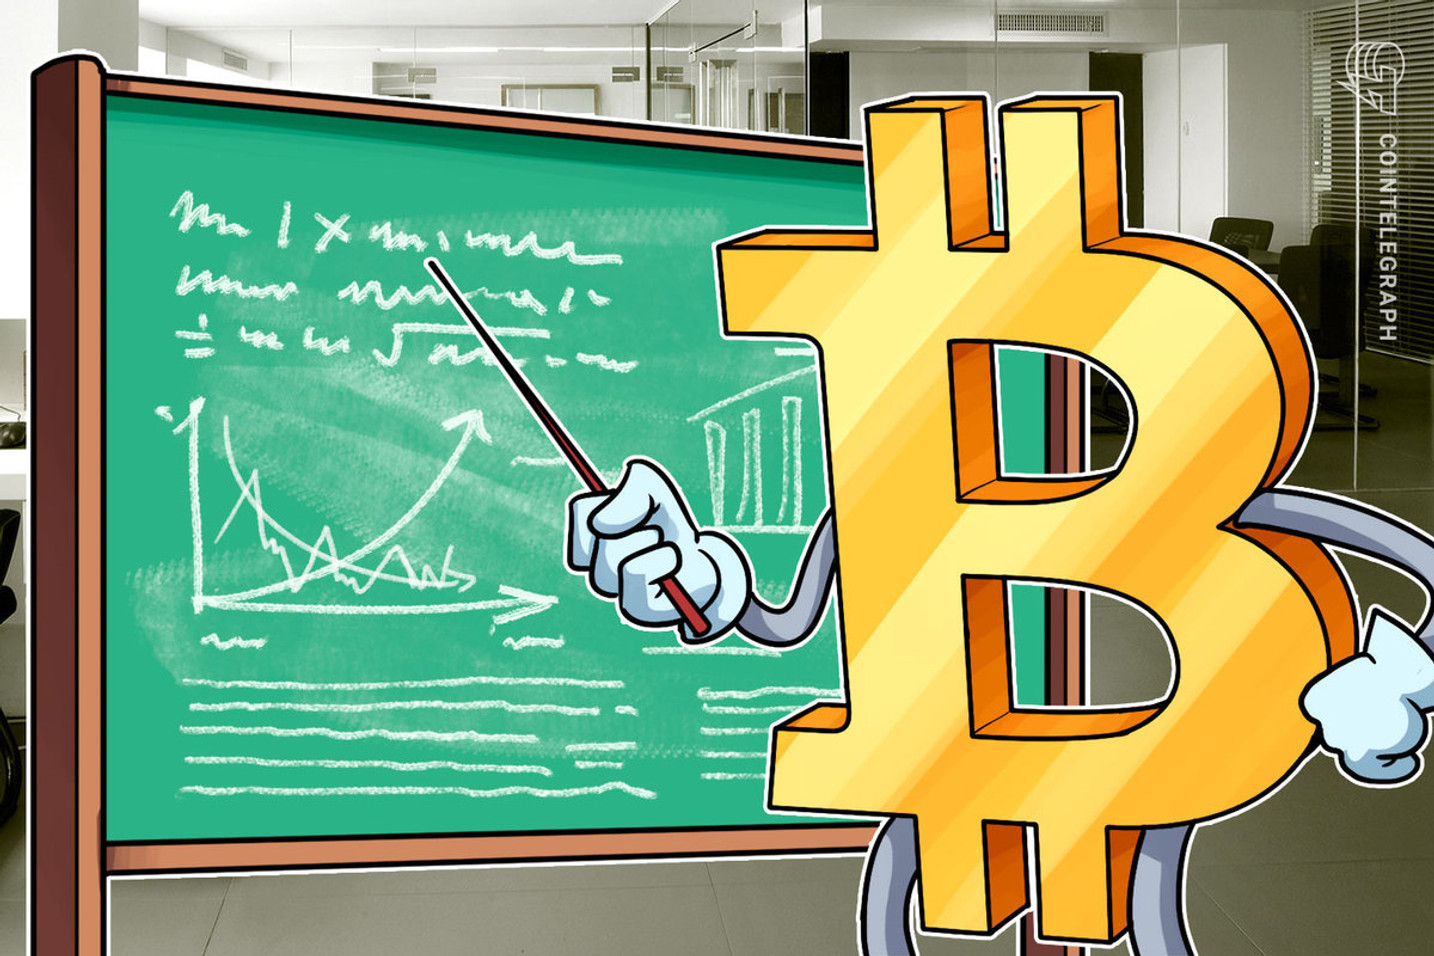 Bloomberg: Bitcoin 'has had a tendency of adding zeroes to its price'